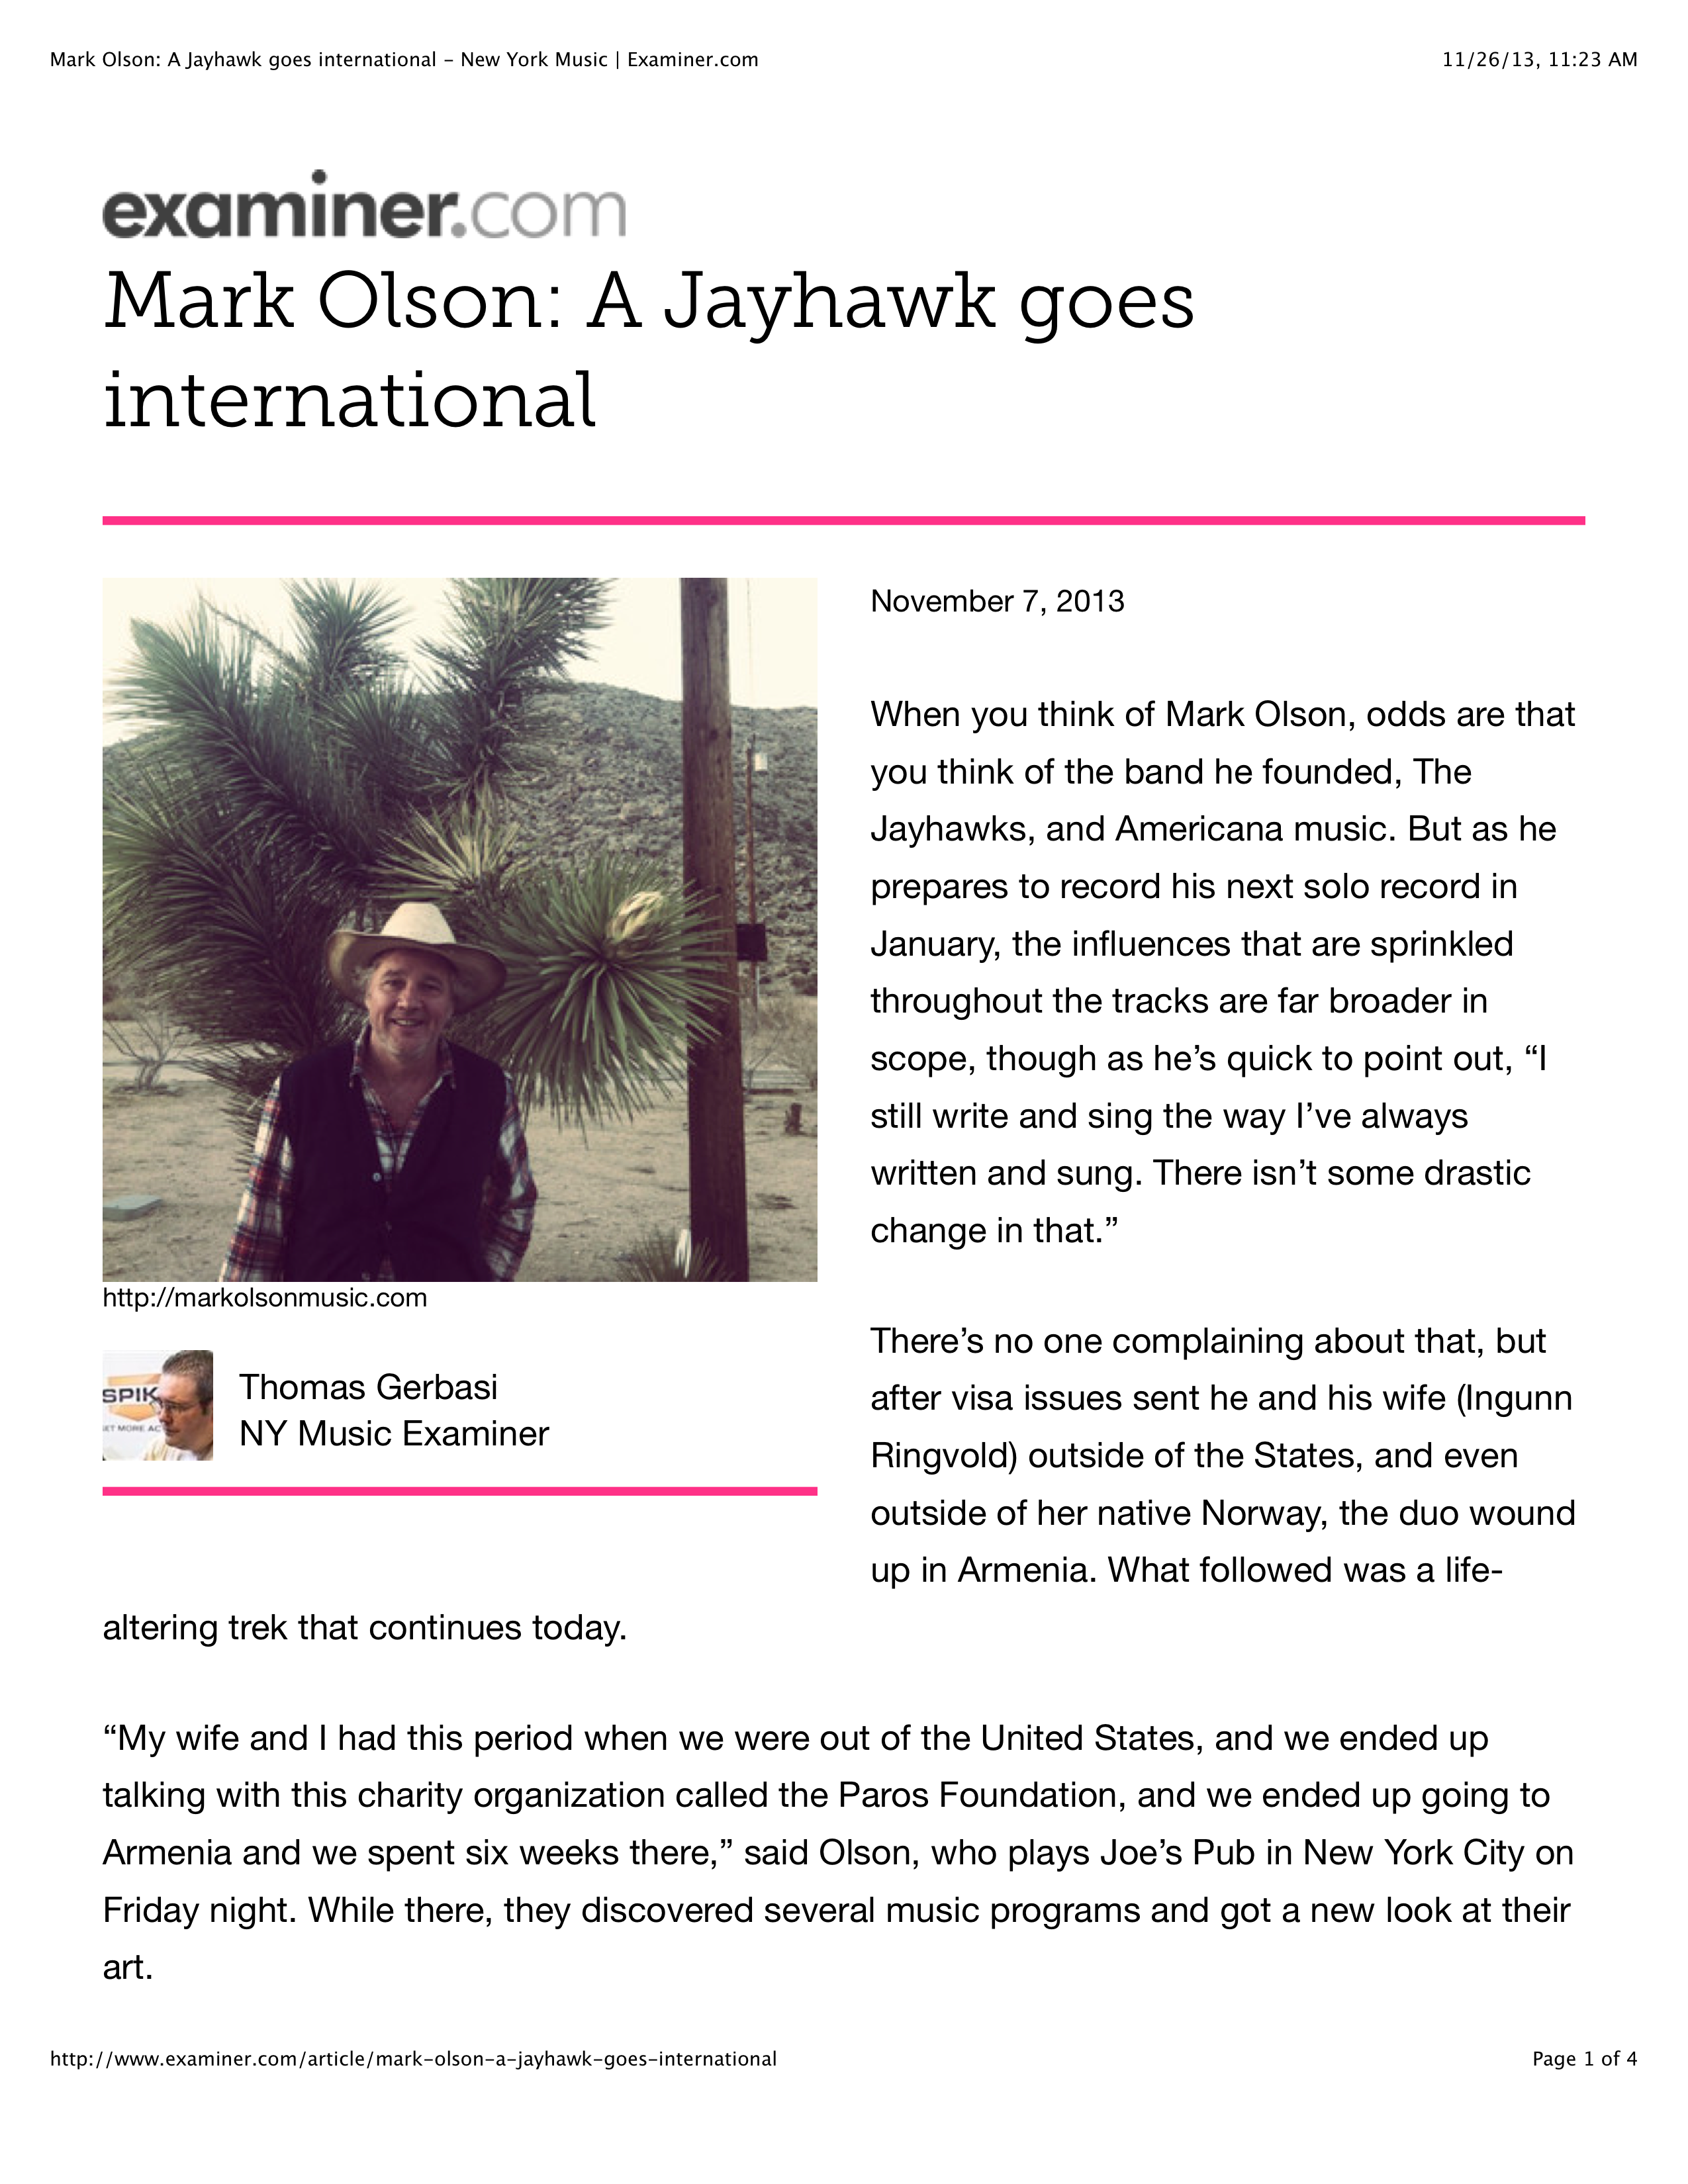 Mark Olson: A Jayhawk goes international - New York Music | Examiner.com 1